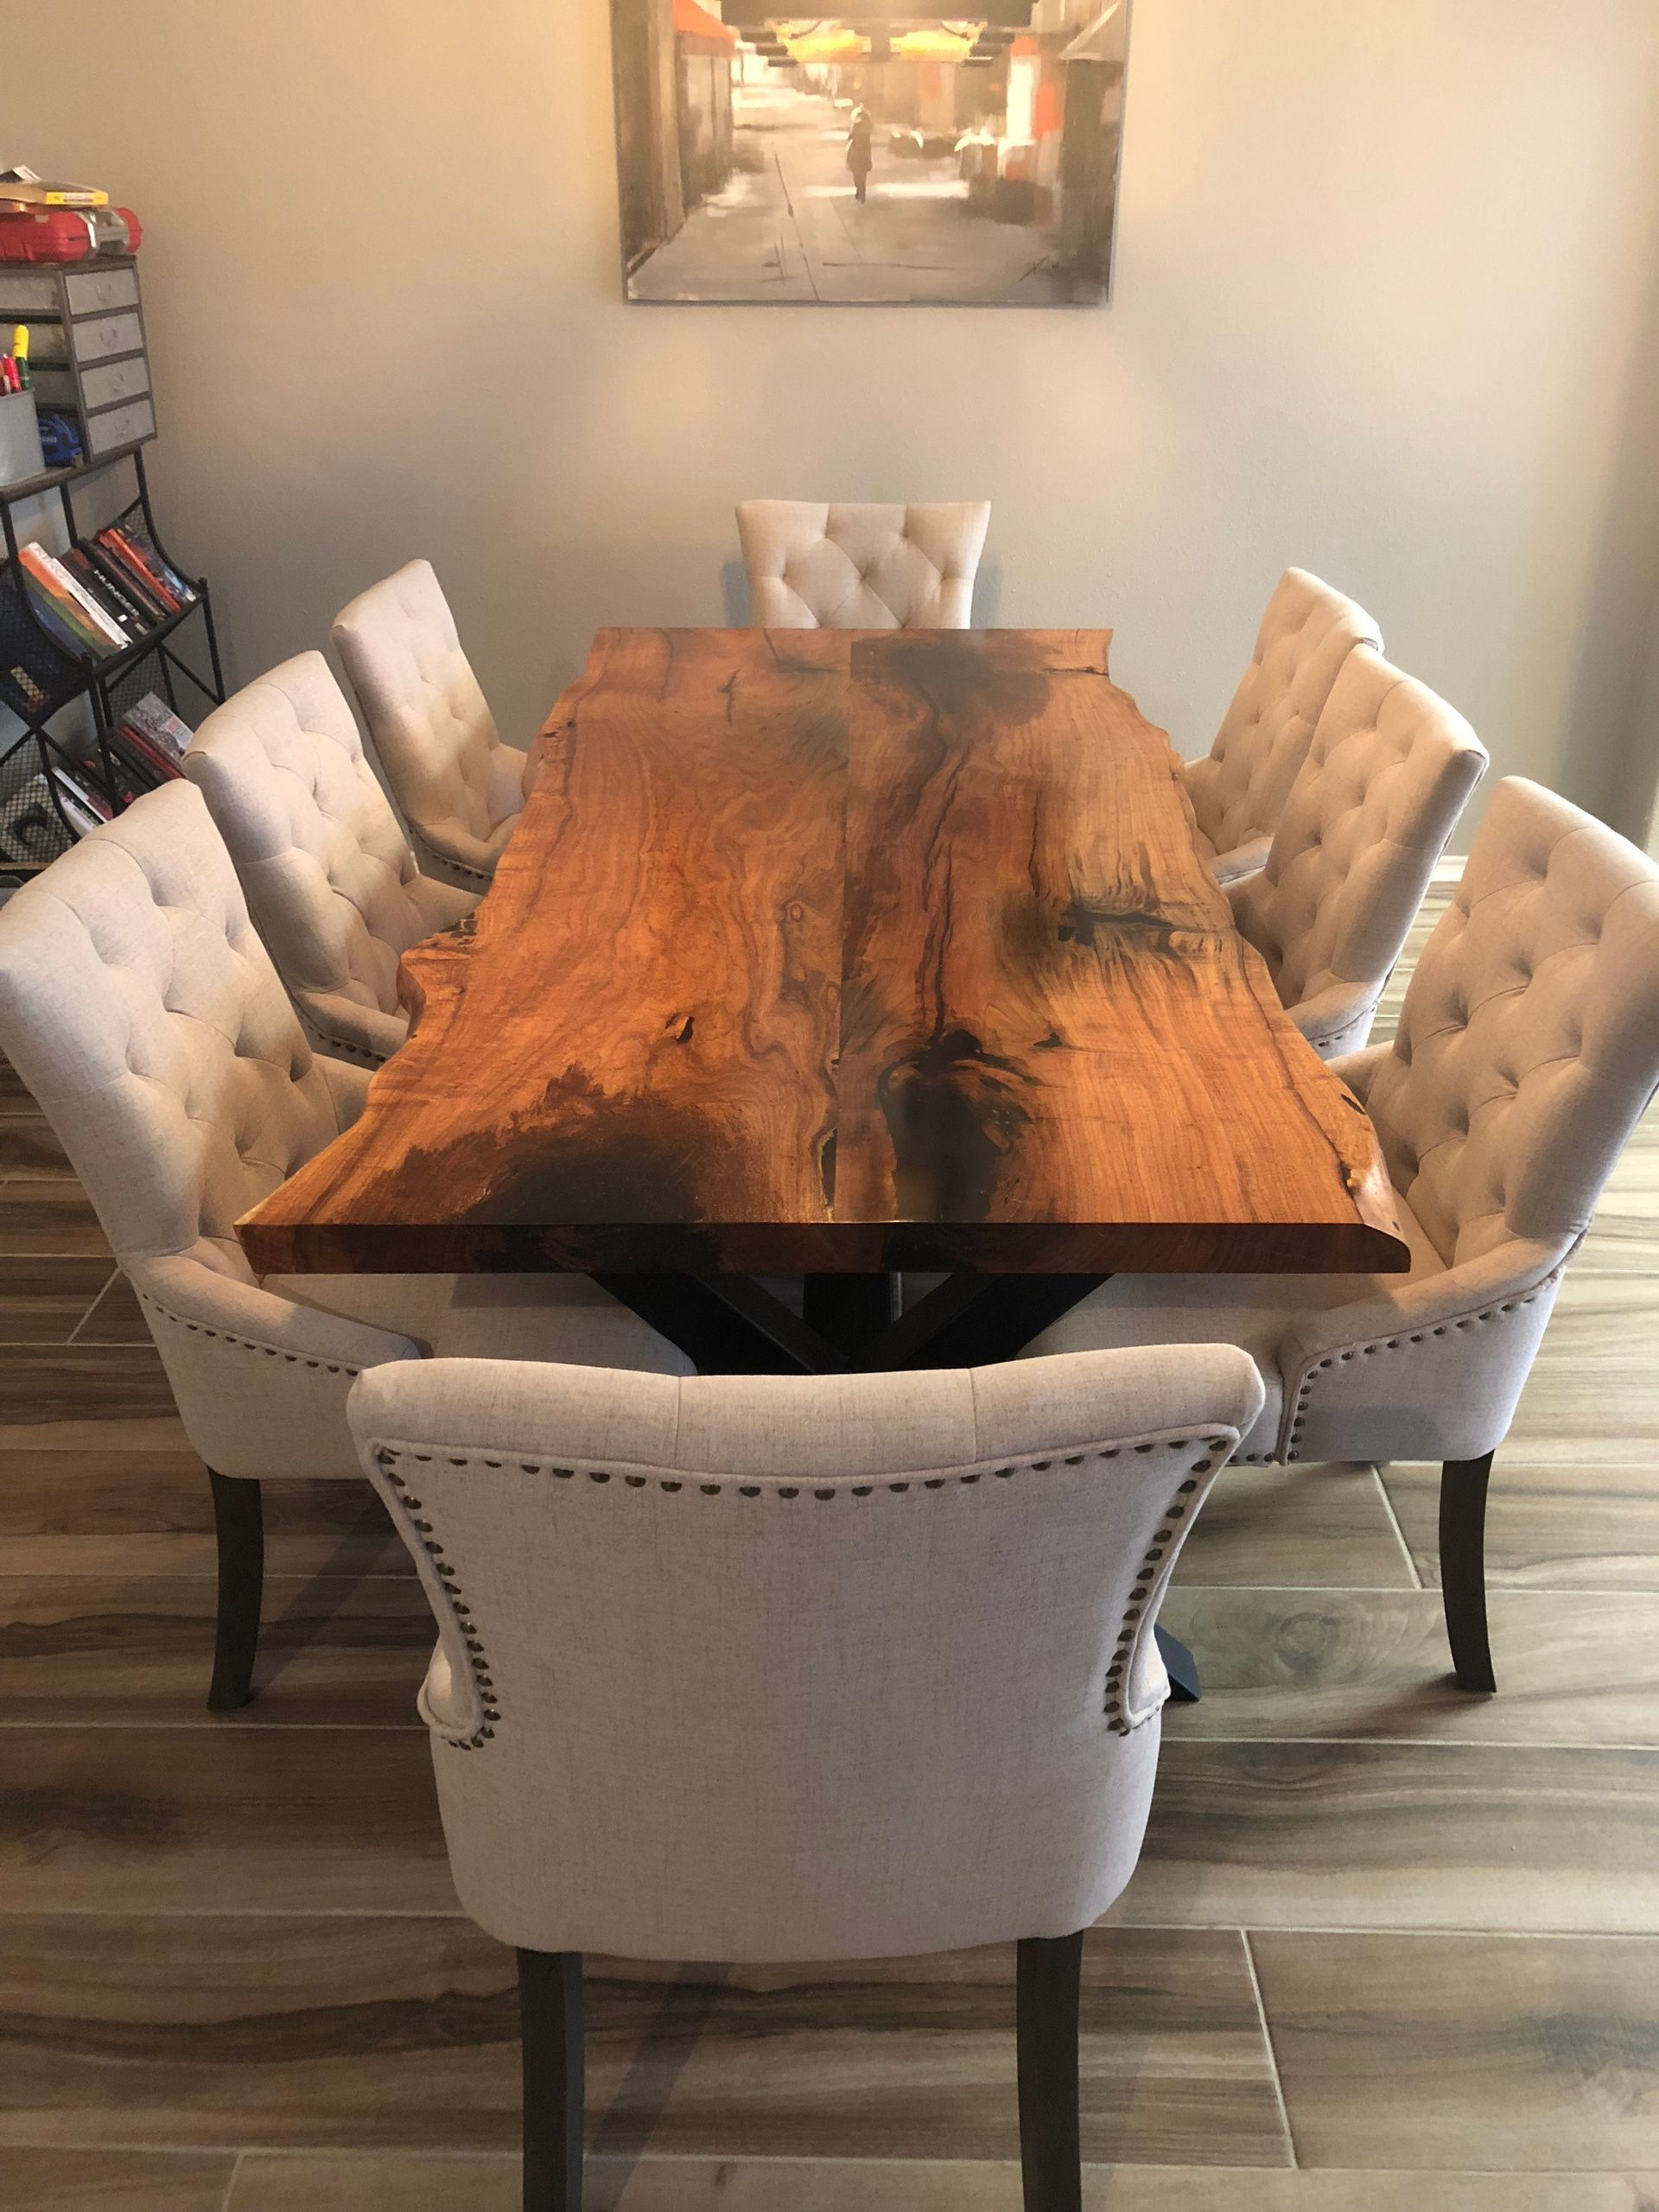 I Love The Look Of This Custom Dining Table And I Would Love To